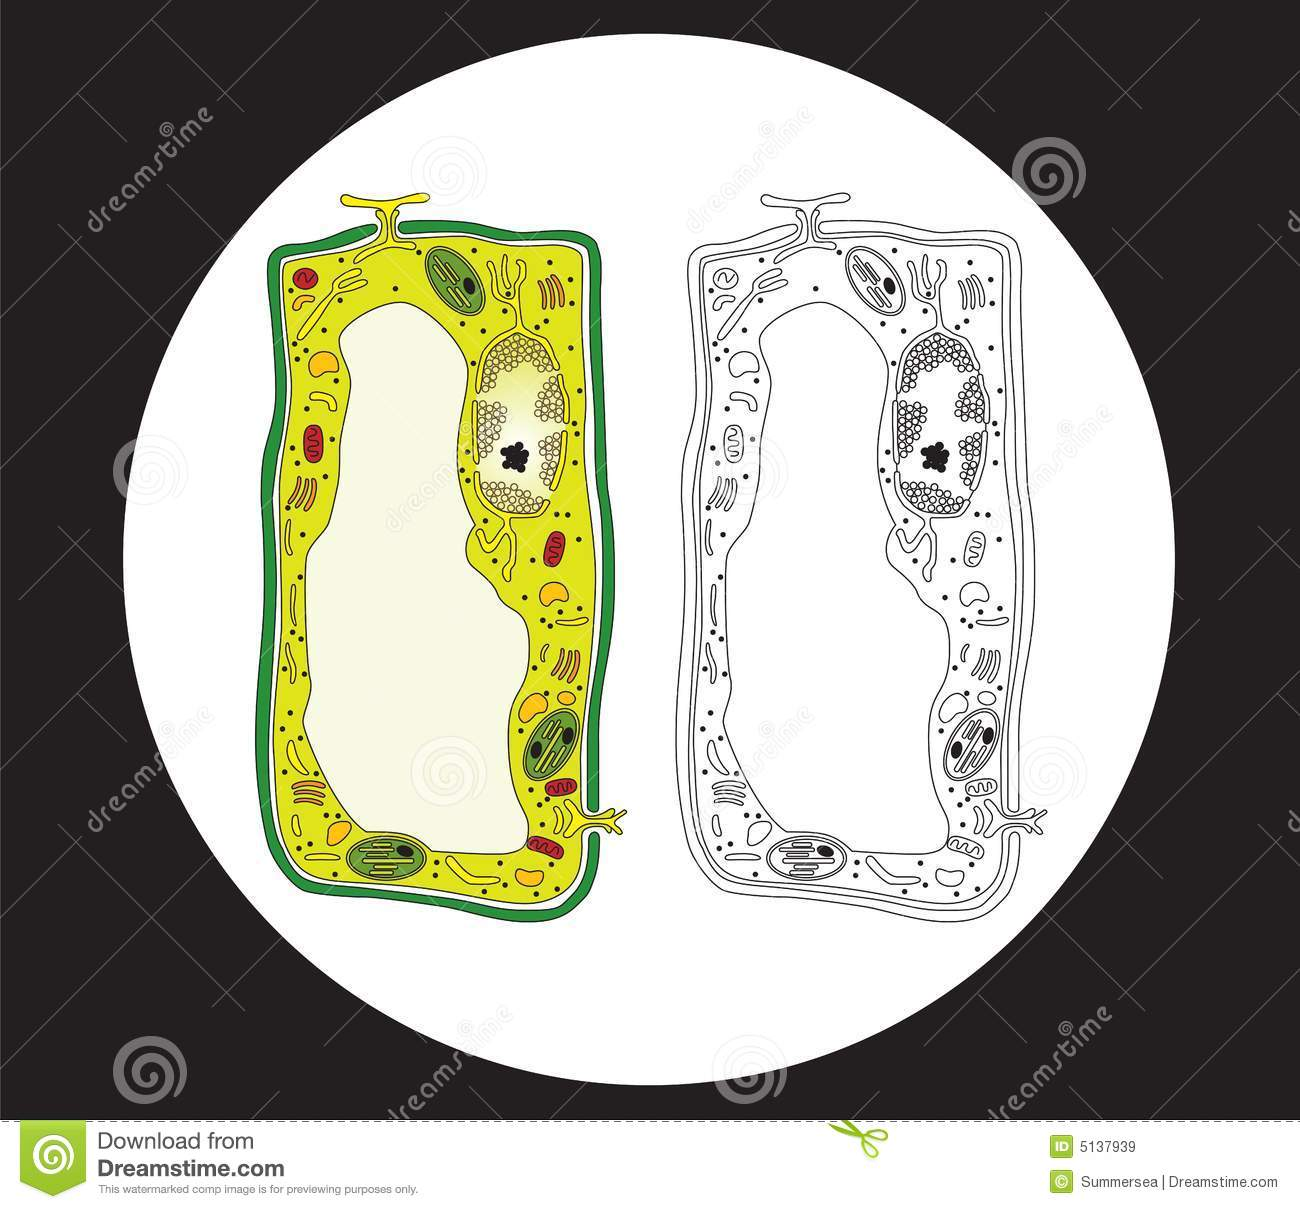 Plant Cell Cross Section Royalty Free Stock Images